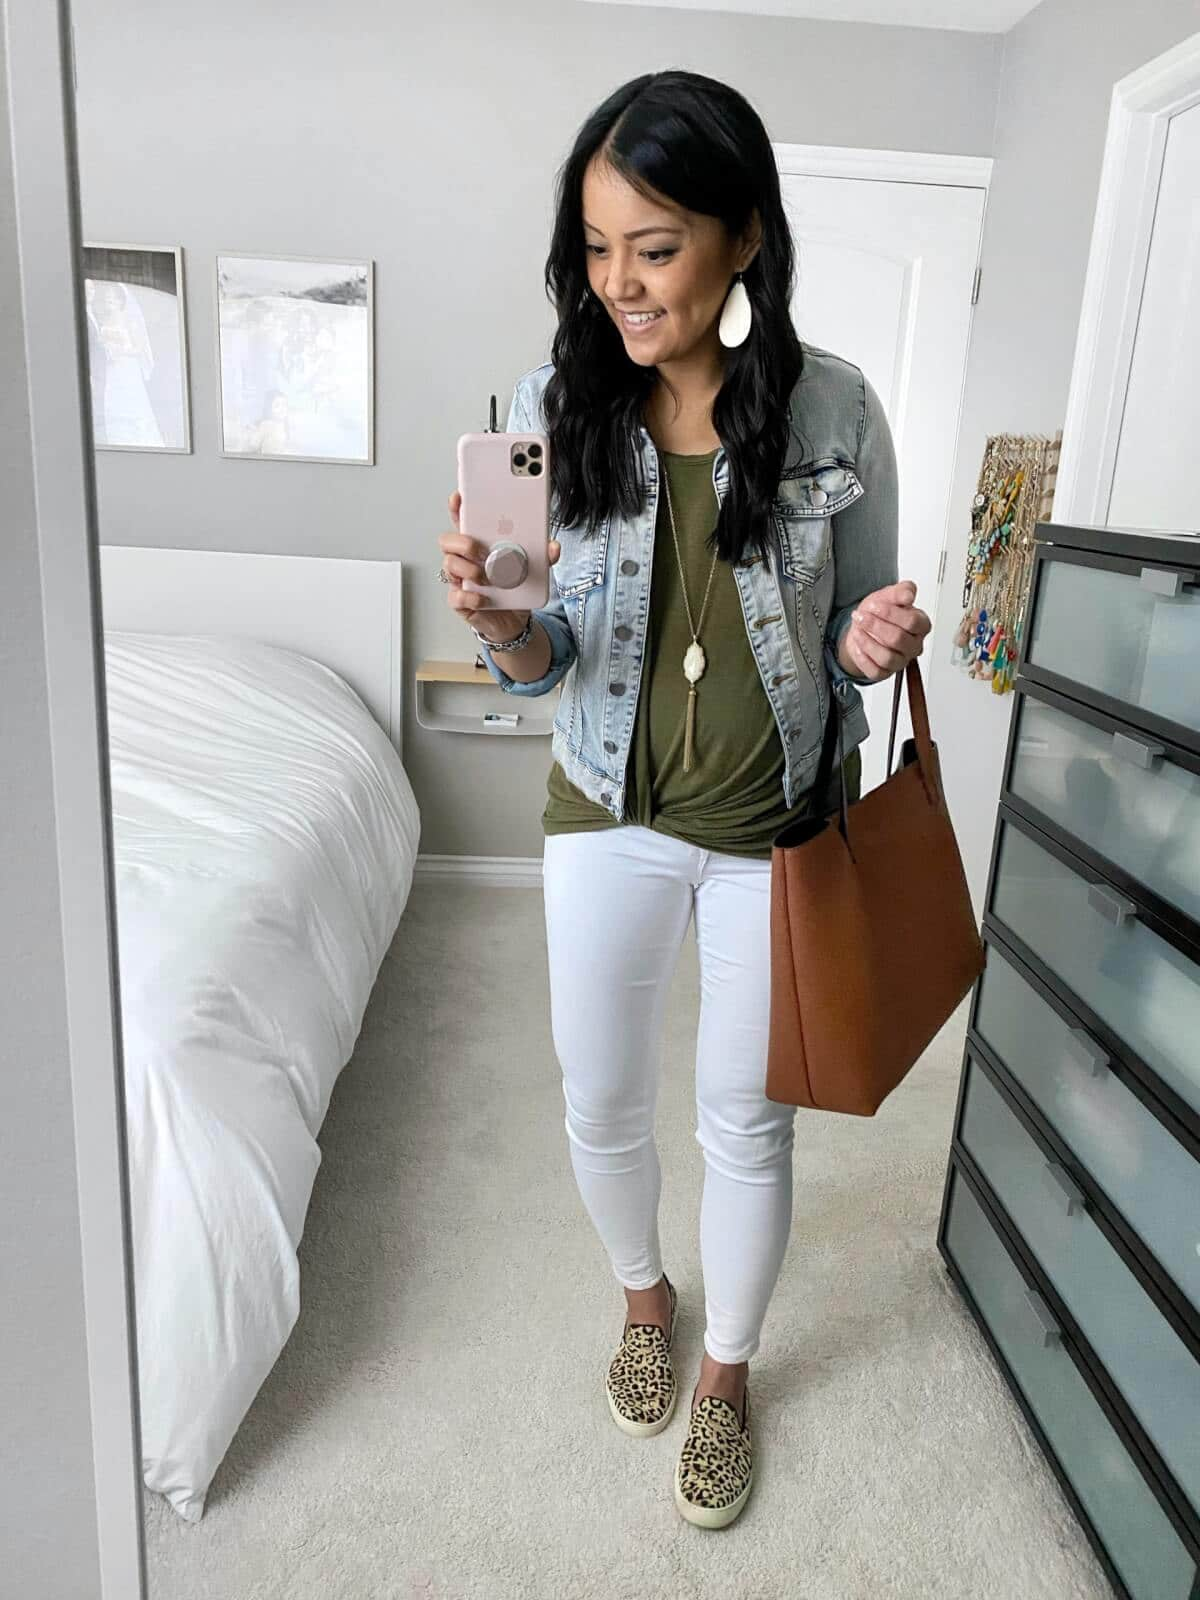 denim jacket outfit: denim jacket + olive tee + white jeans + leopard sneakers + brown tote + pendant necklace + white earrings